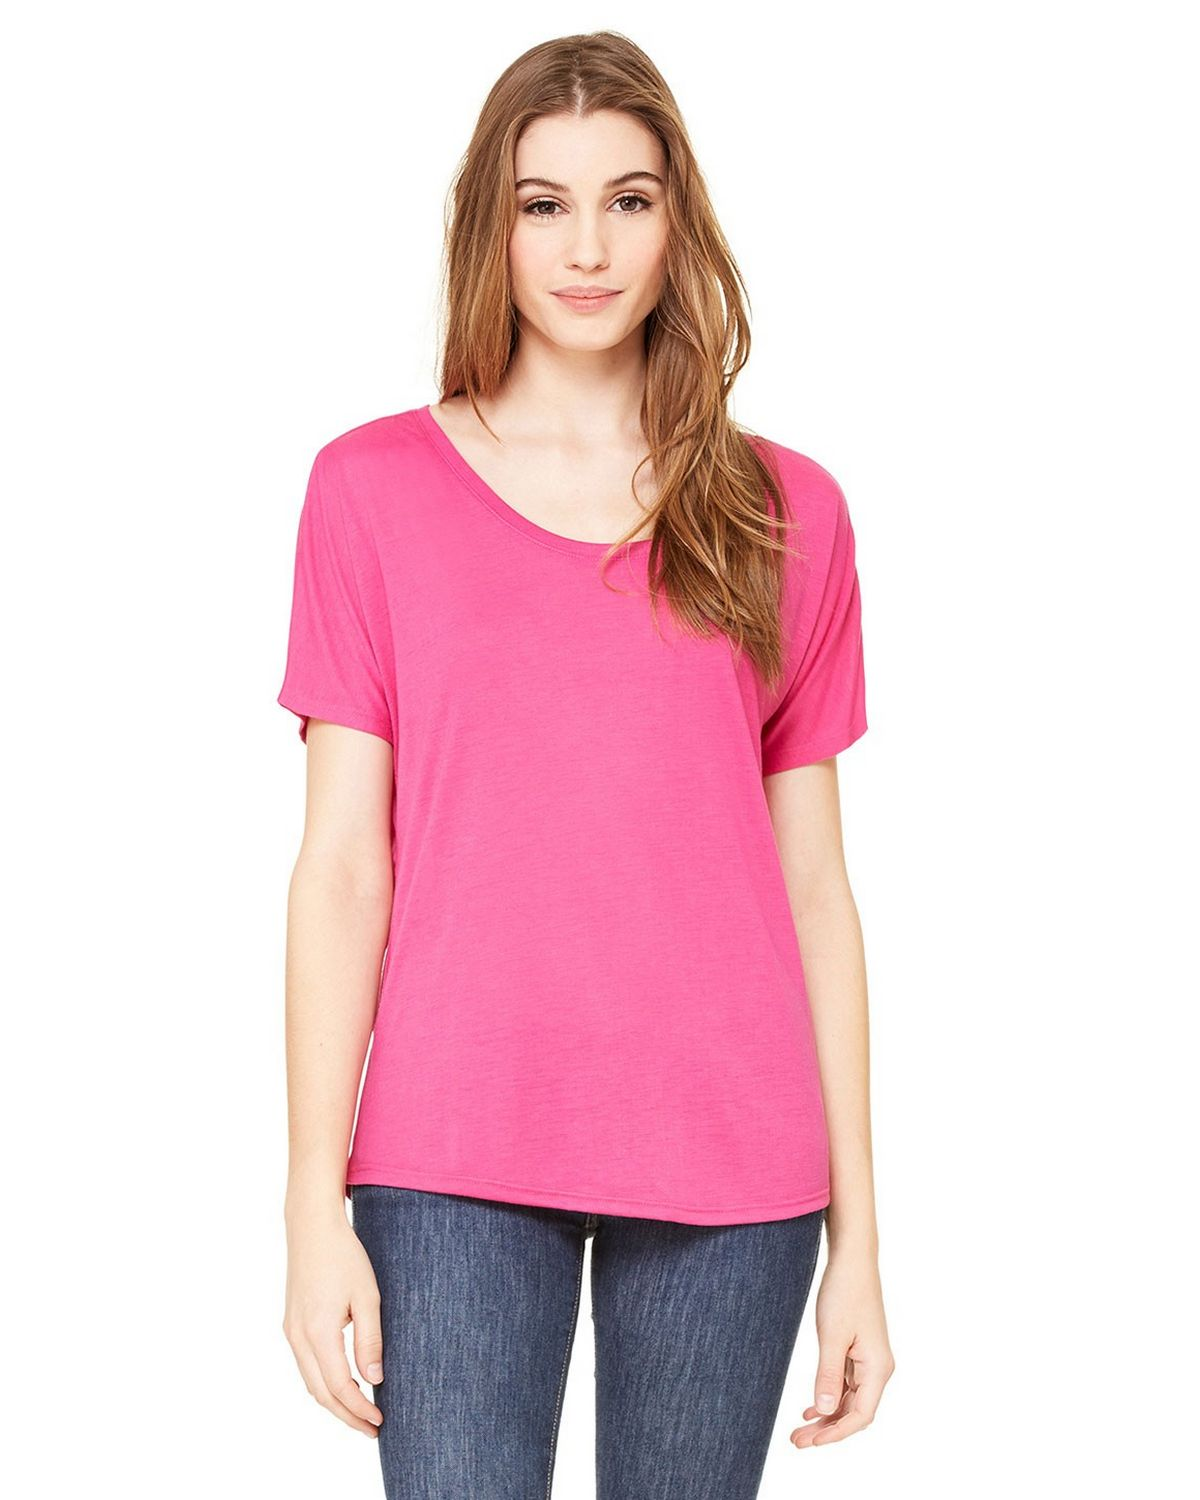 Bella + Canvas 8816 Ladies Flowy Simple T-Shirt - Berry - L 8816